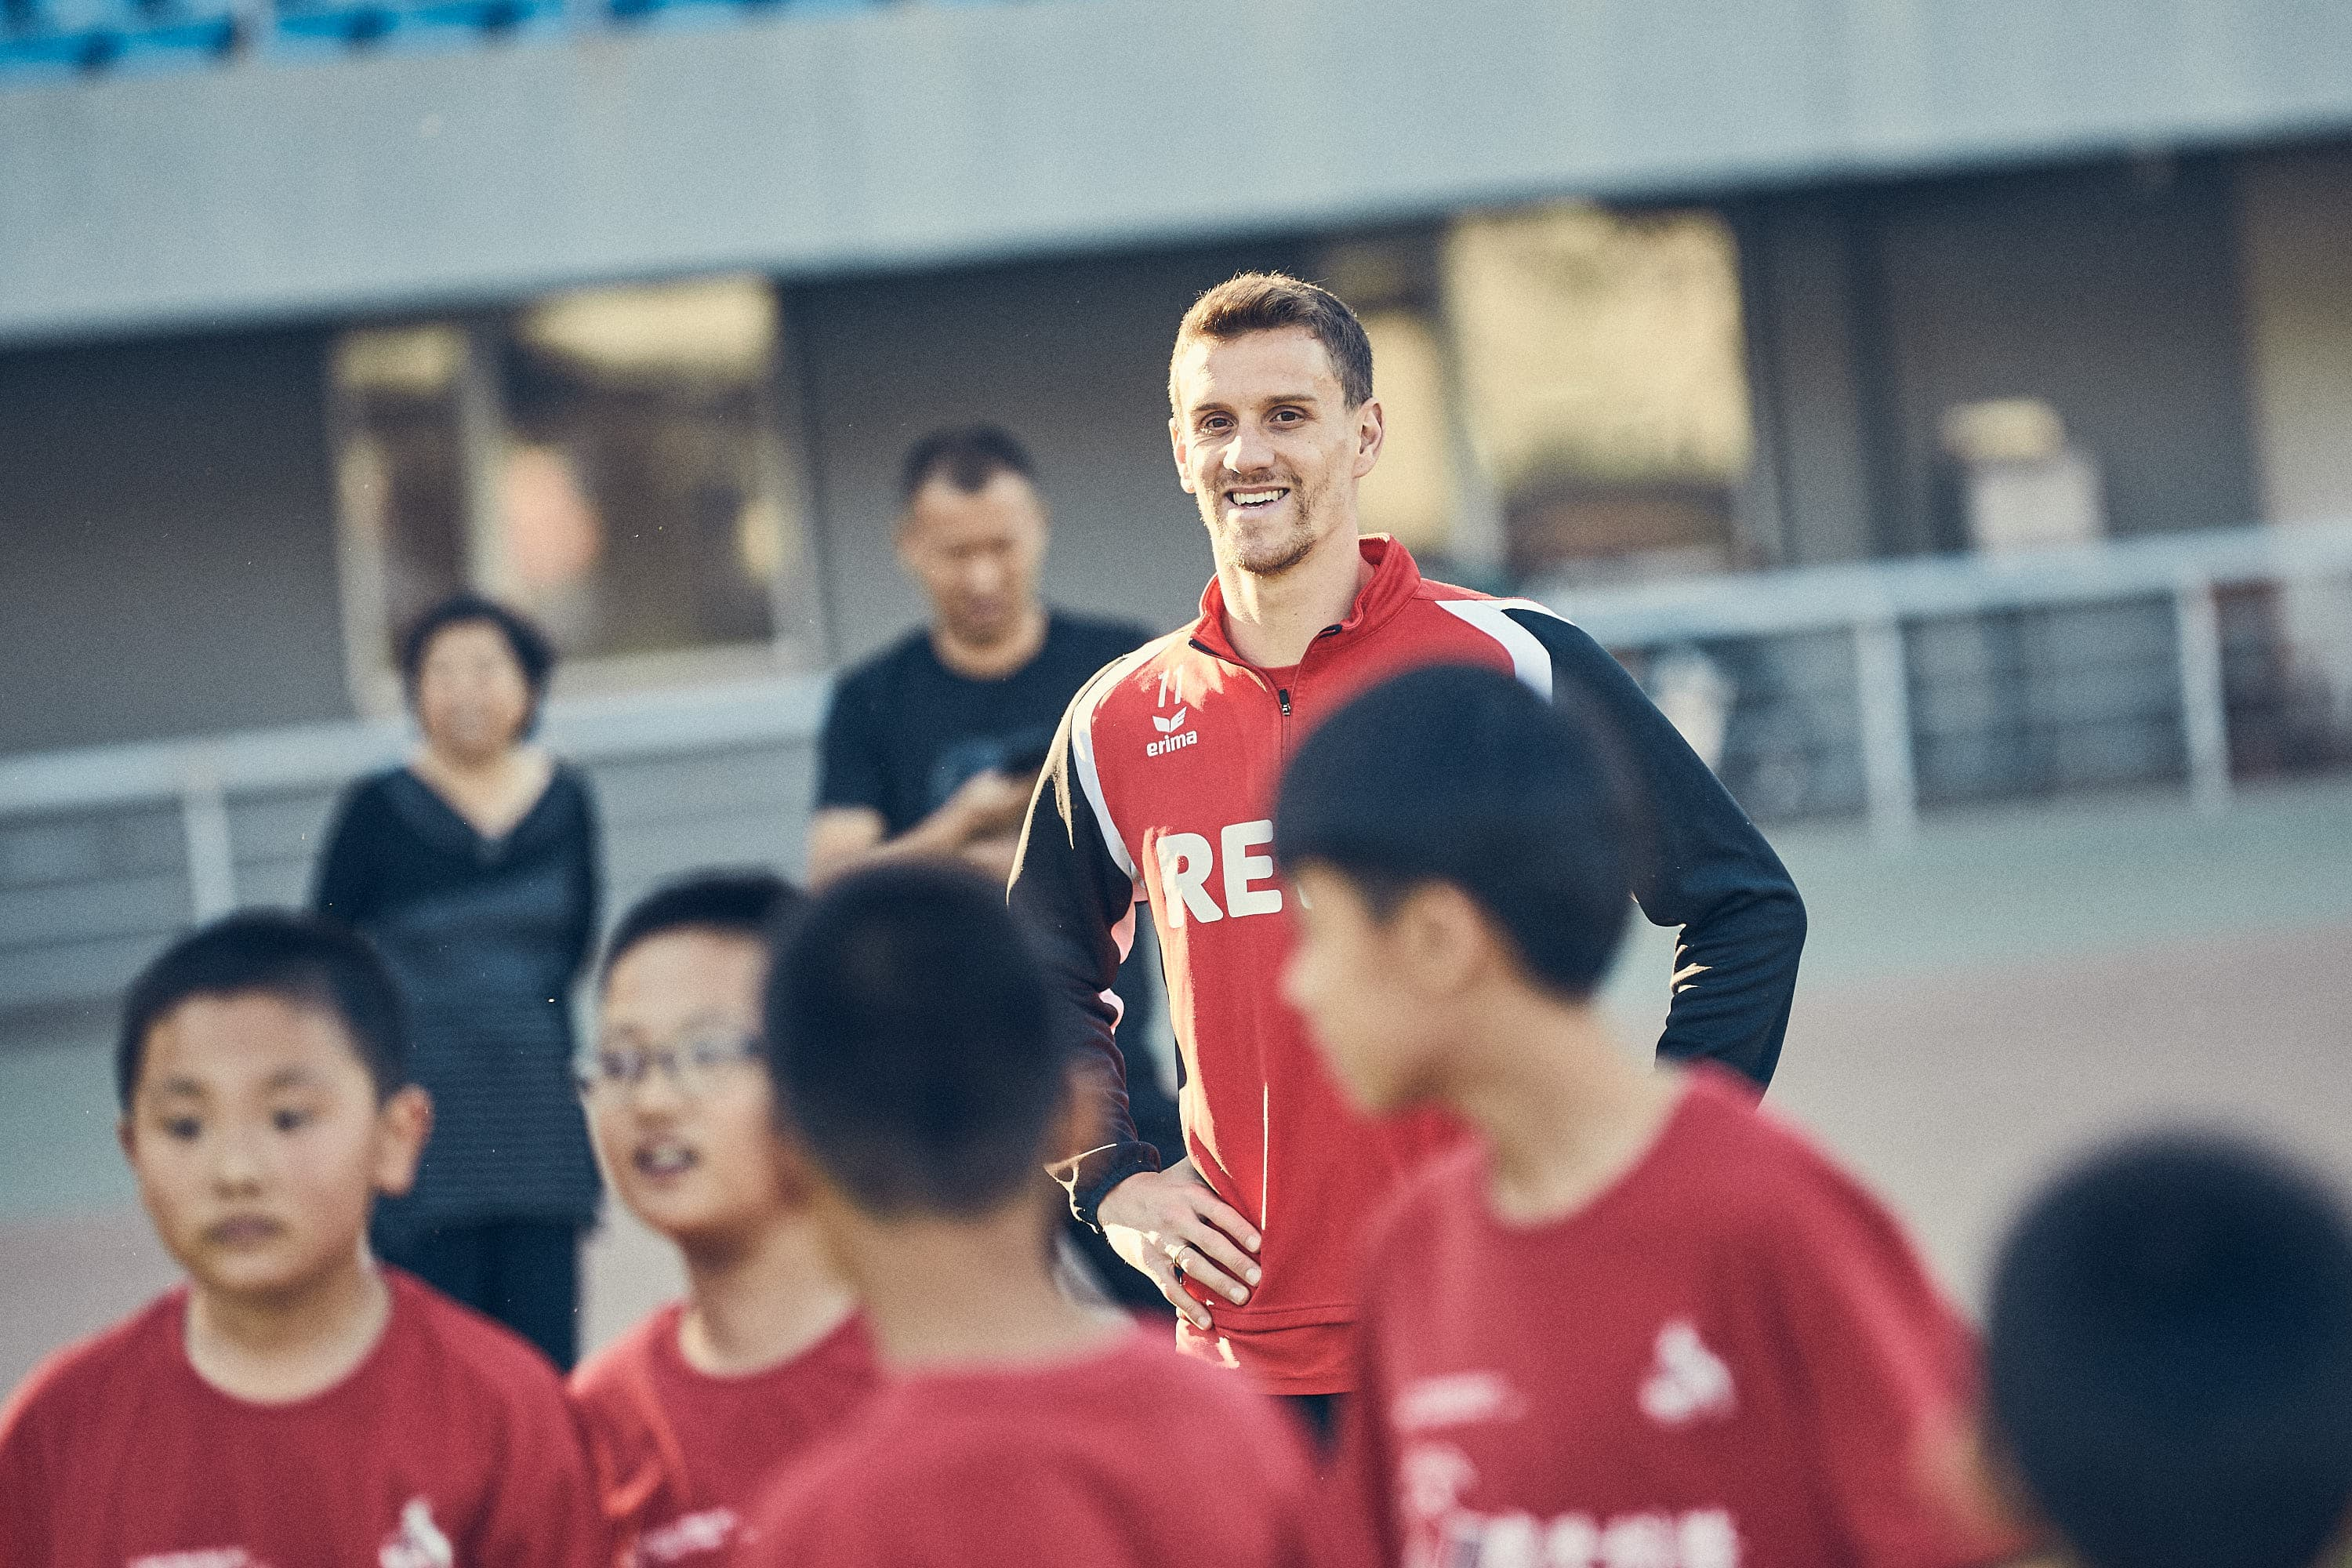 www.reneschiffer.de 1. FC Köln China